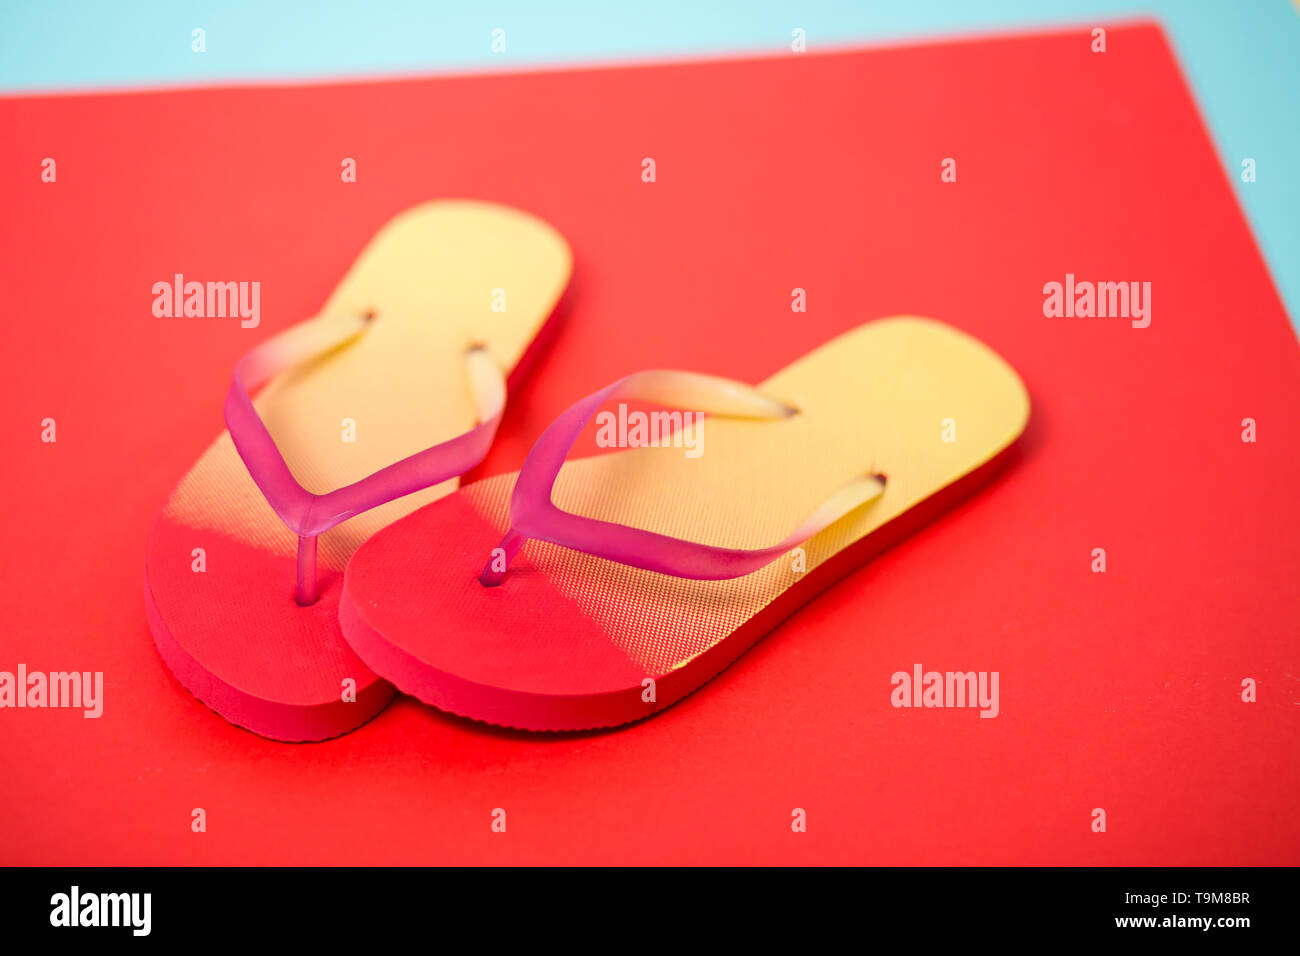 Pair of colorful flip flops on coral background. Summer, vacation, beach, shoes, shop concept. Studio shot of pink yellow sandals. - Stock Image